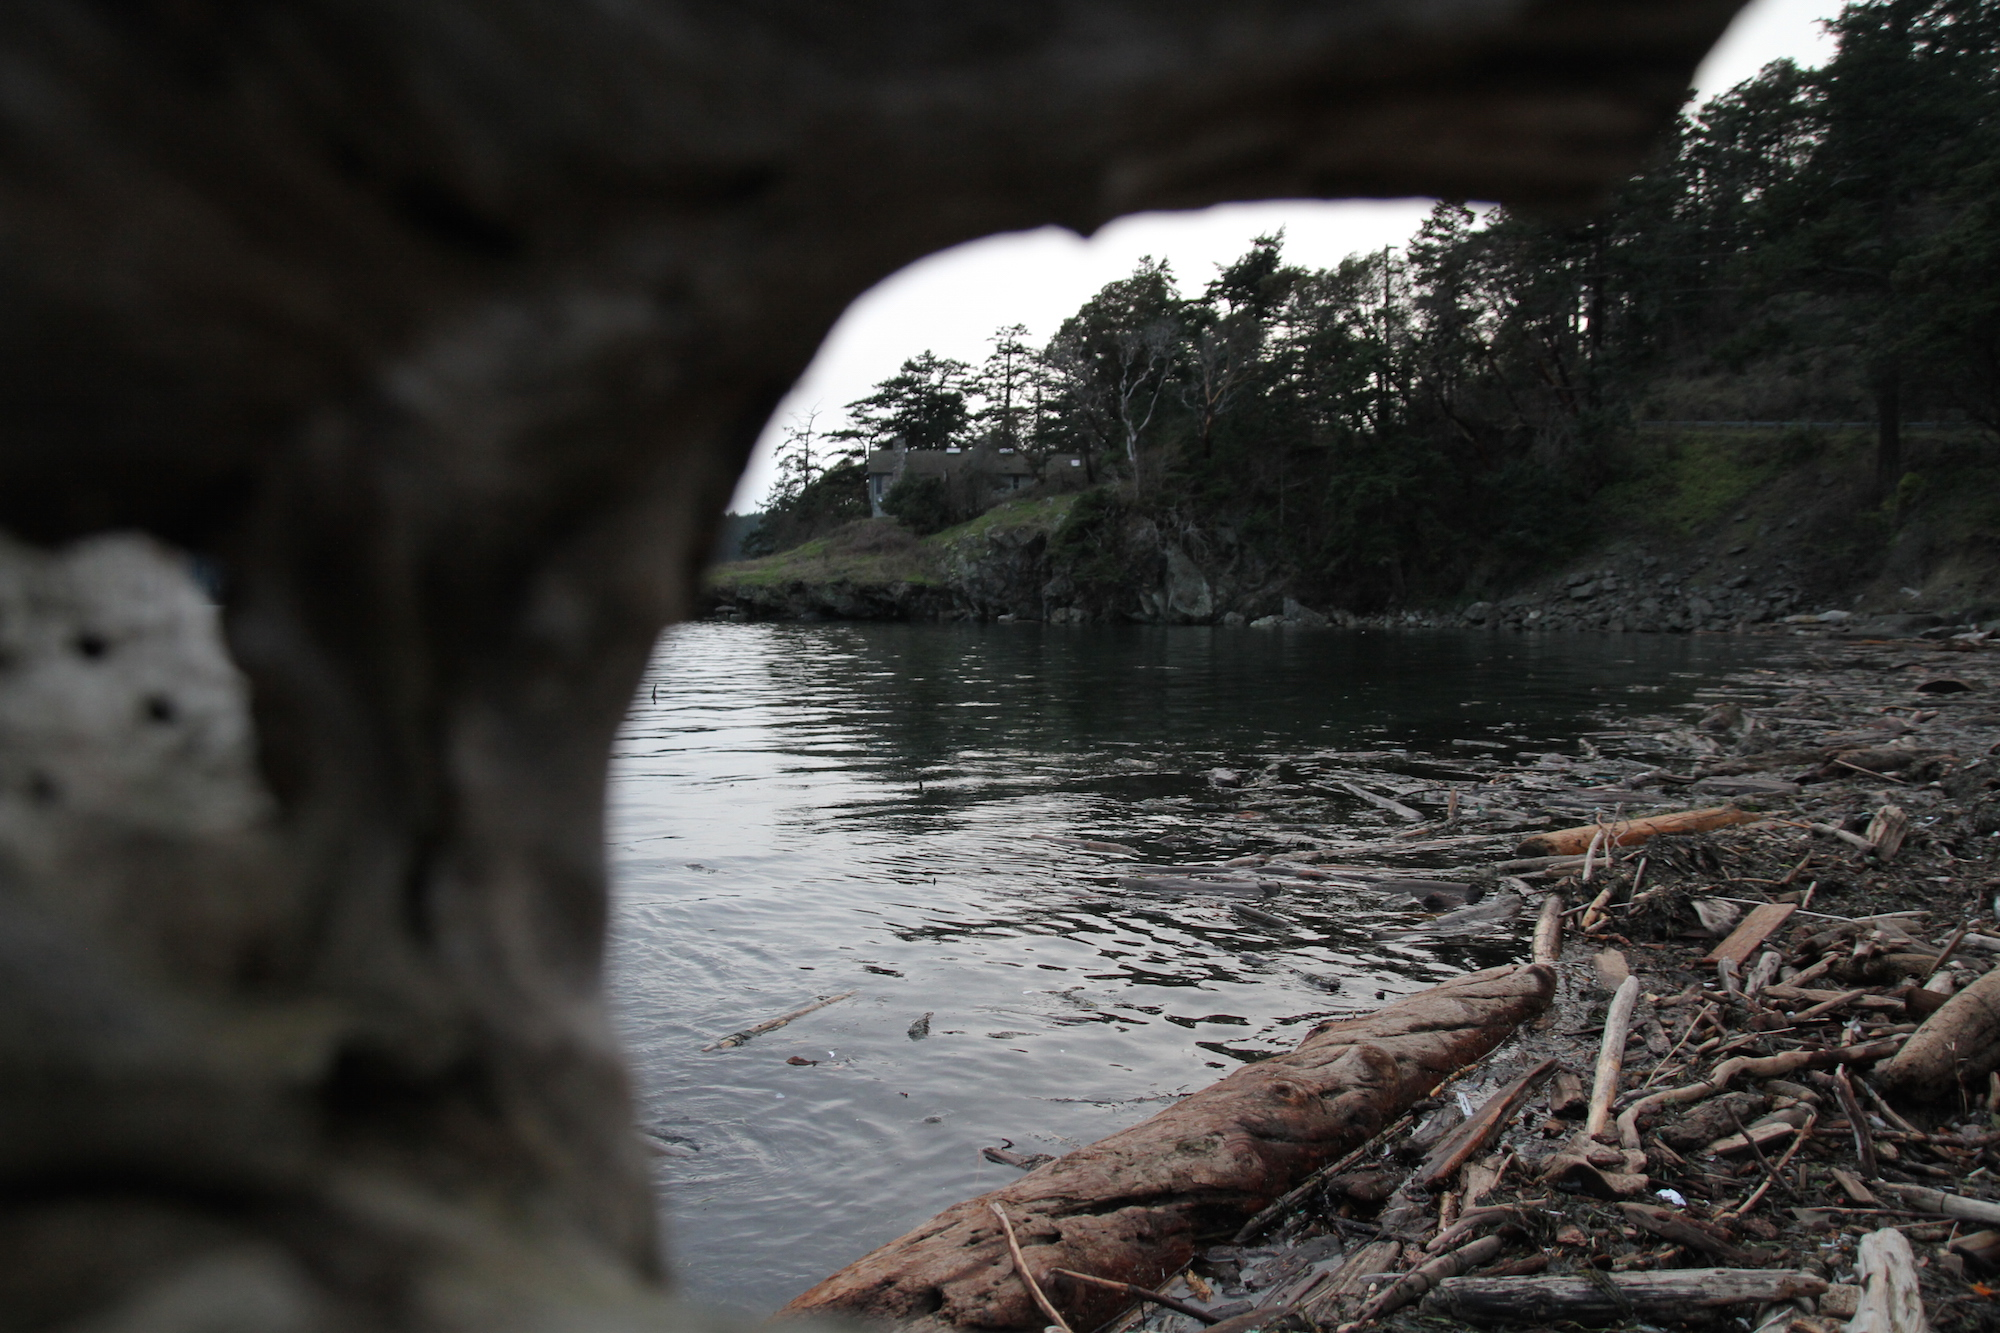 A view through the driftwood. Photo by Gray G.